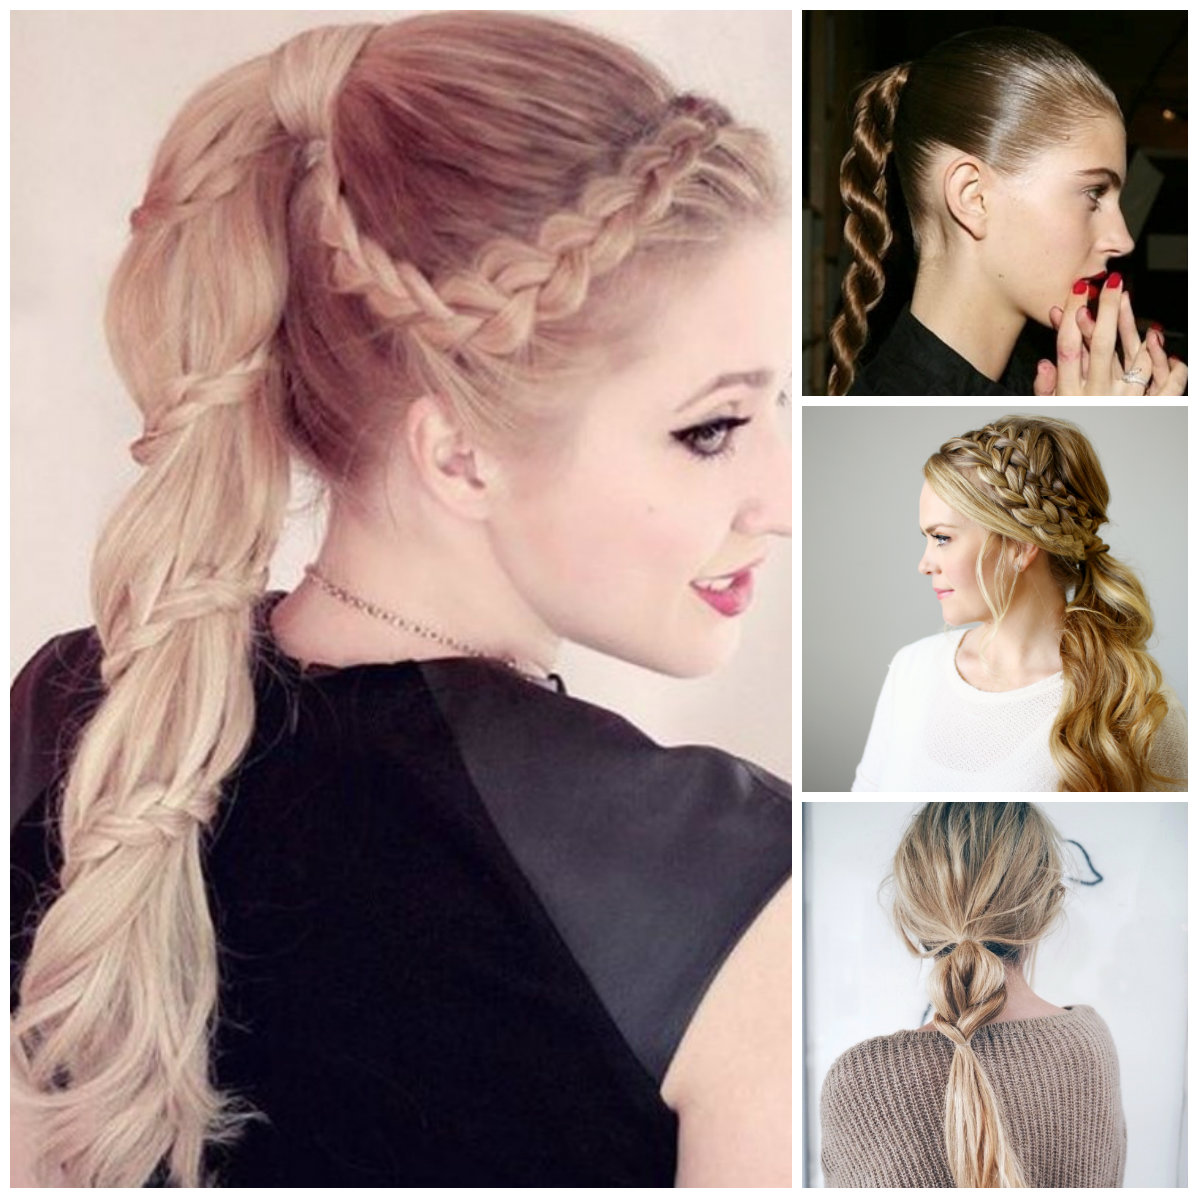 Braided Hairstyles | 2016 Haircuts, Hairstyles and Hair Colors